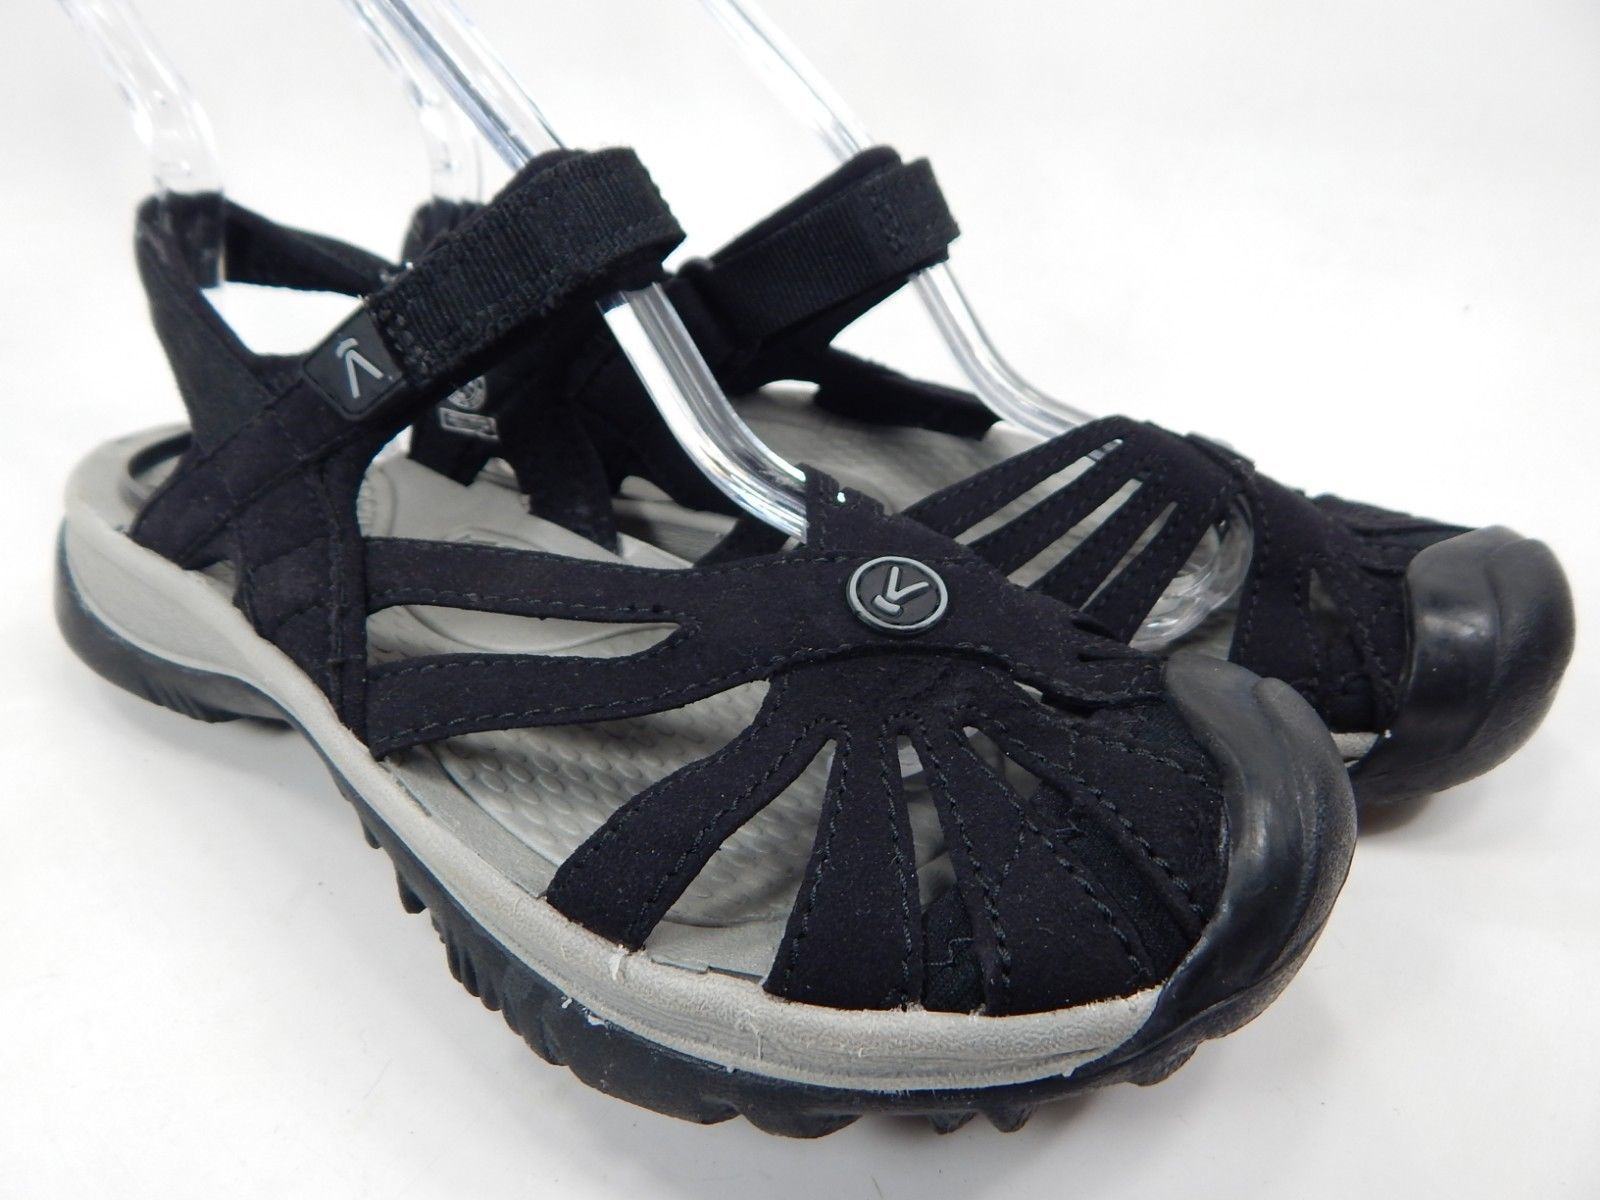 Keen Rose Size 7.5 M (B) EU 38 Women's Sports Sandals Black Gray 1008783